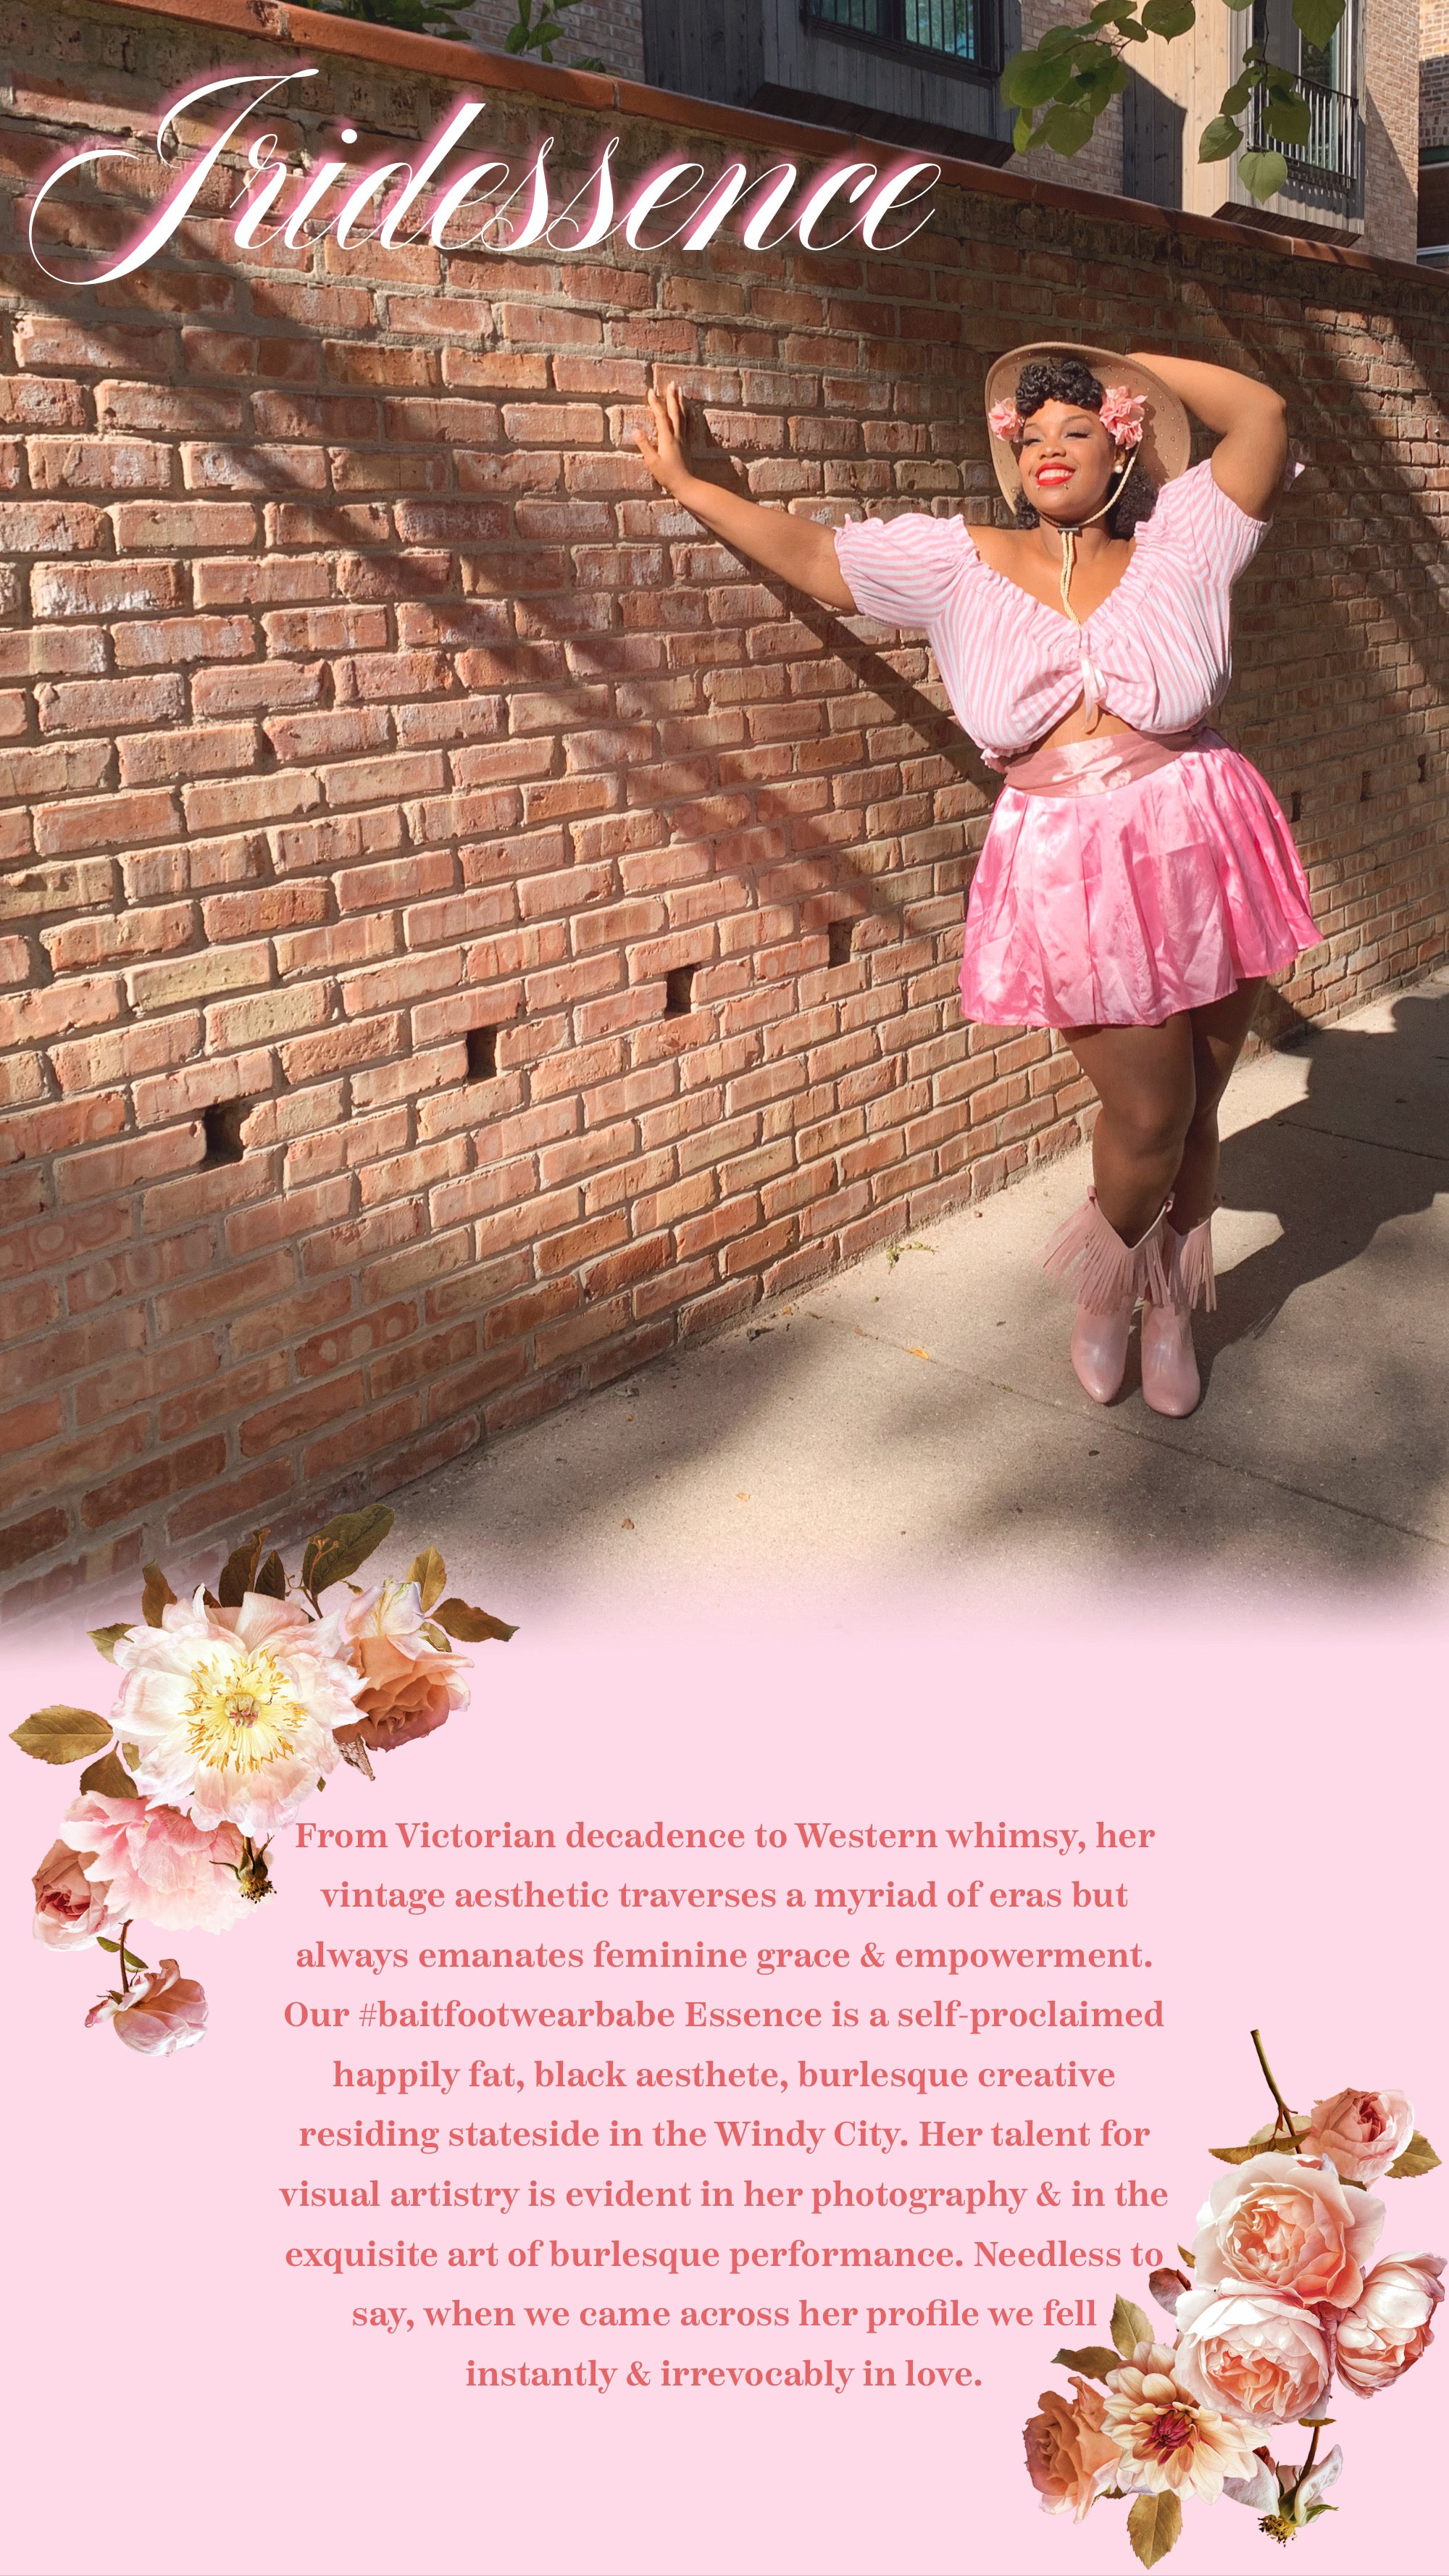 iridessence smiling leaning on a brick wall, wearing a satin pink skirt with a pink striped peasant top. Standing in the Hamilton western fringe boot in pink.From Victorian decadence to Western whimsy, her vintage aesthetic traverses a myriad of eras but always emanates feminine grace & empowerment. Our #baitfootwearbabe Essence is a self-proclaimed happily fat, black aesthete, burlesque creative residing stateside in the Windy City. Her talent for visual artistry is evident in her photography & in the exquisite art of burlesque performance. Needless to say, when we came across her profile we fell instantly & irrevocably in love.